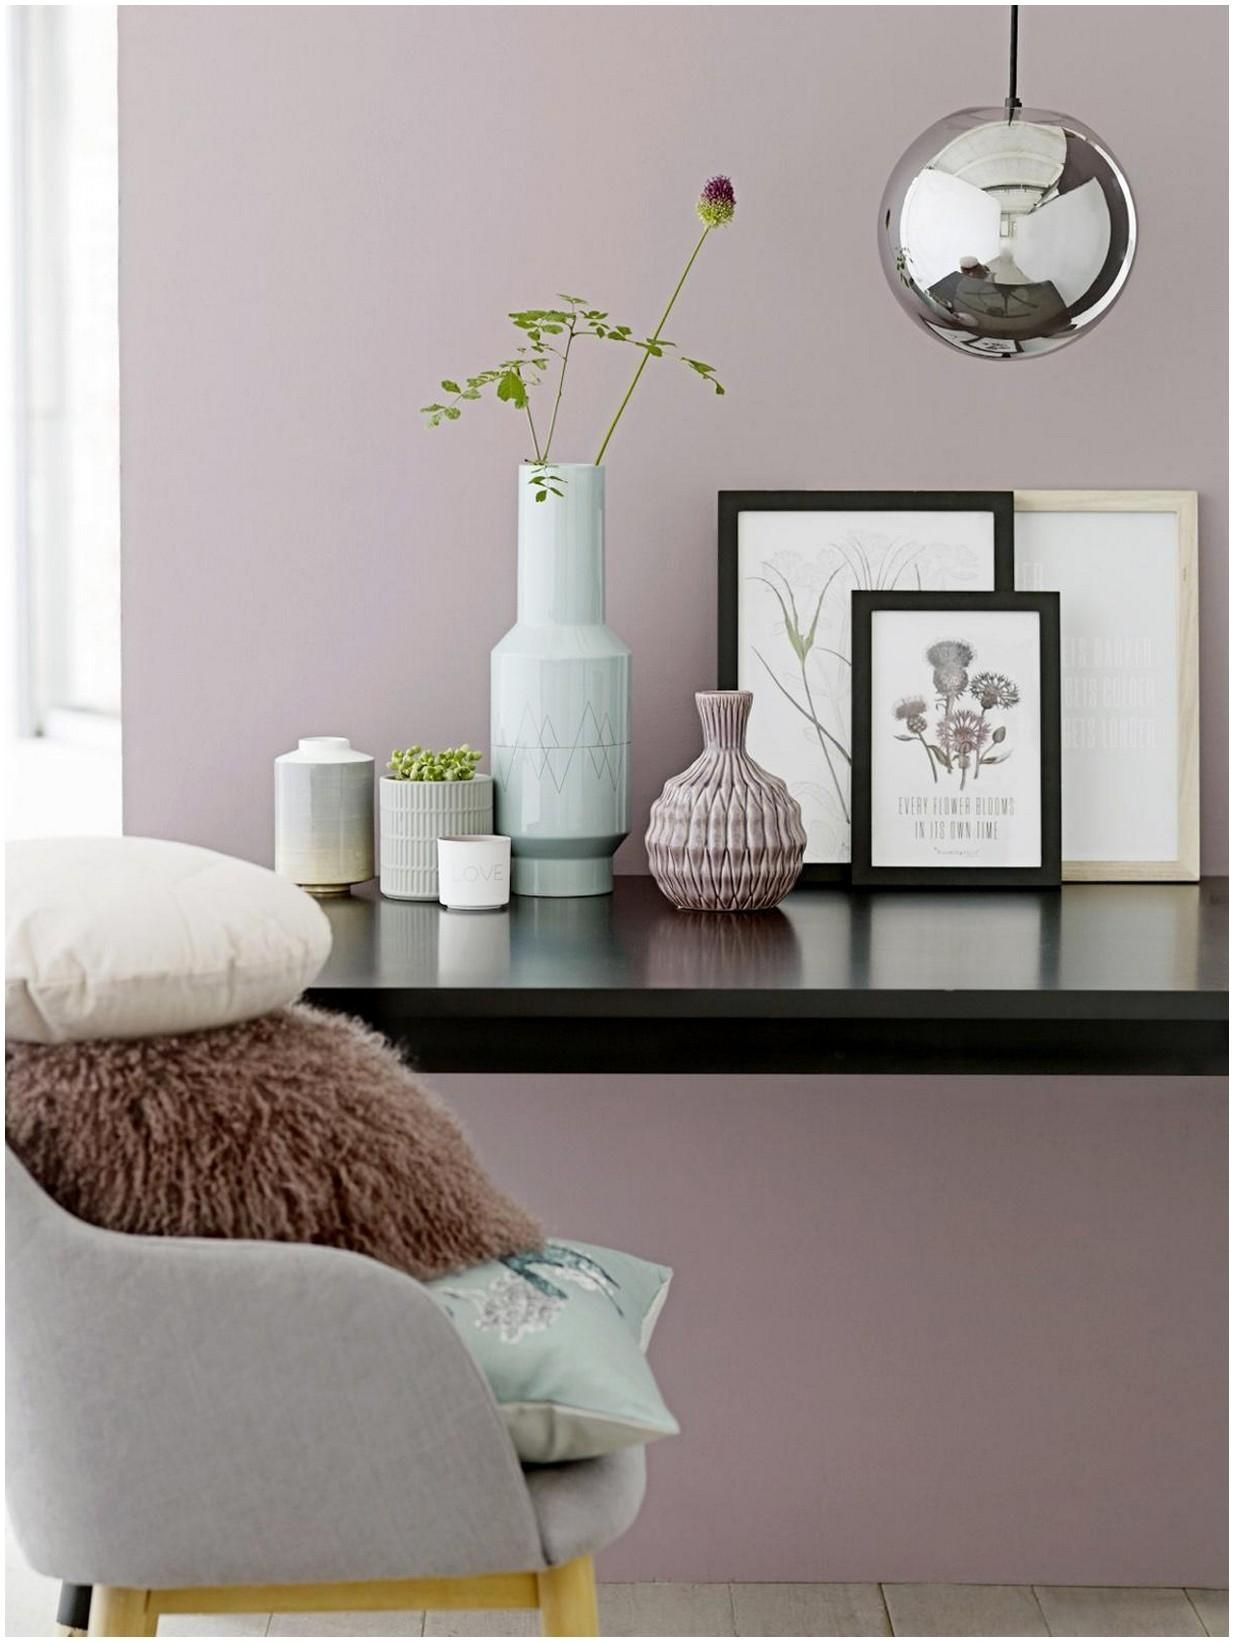 Wandfarbe Mauve Schöner Wohnen Pin By Peter Durr On Regal Pinterest Interior Decor And Bedroom